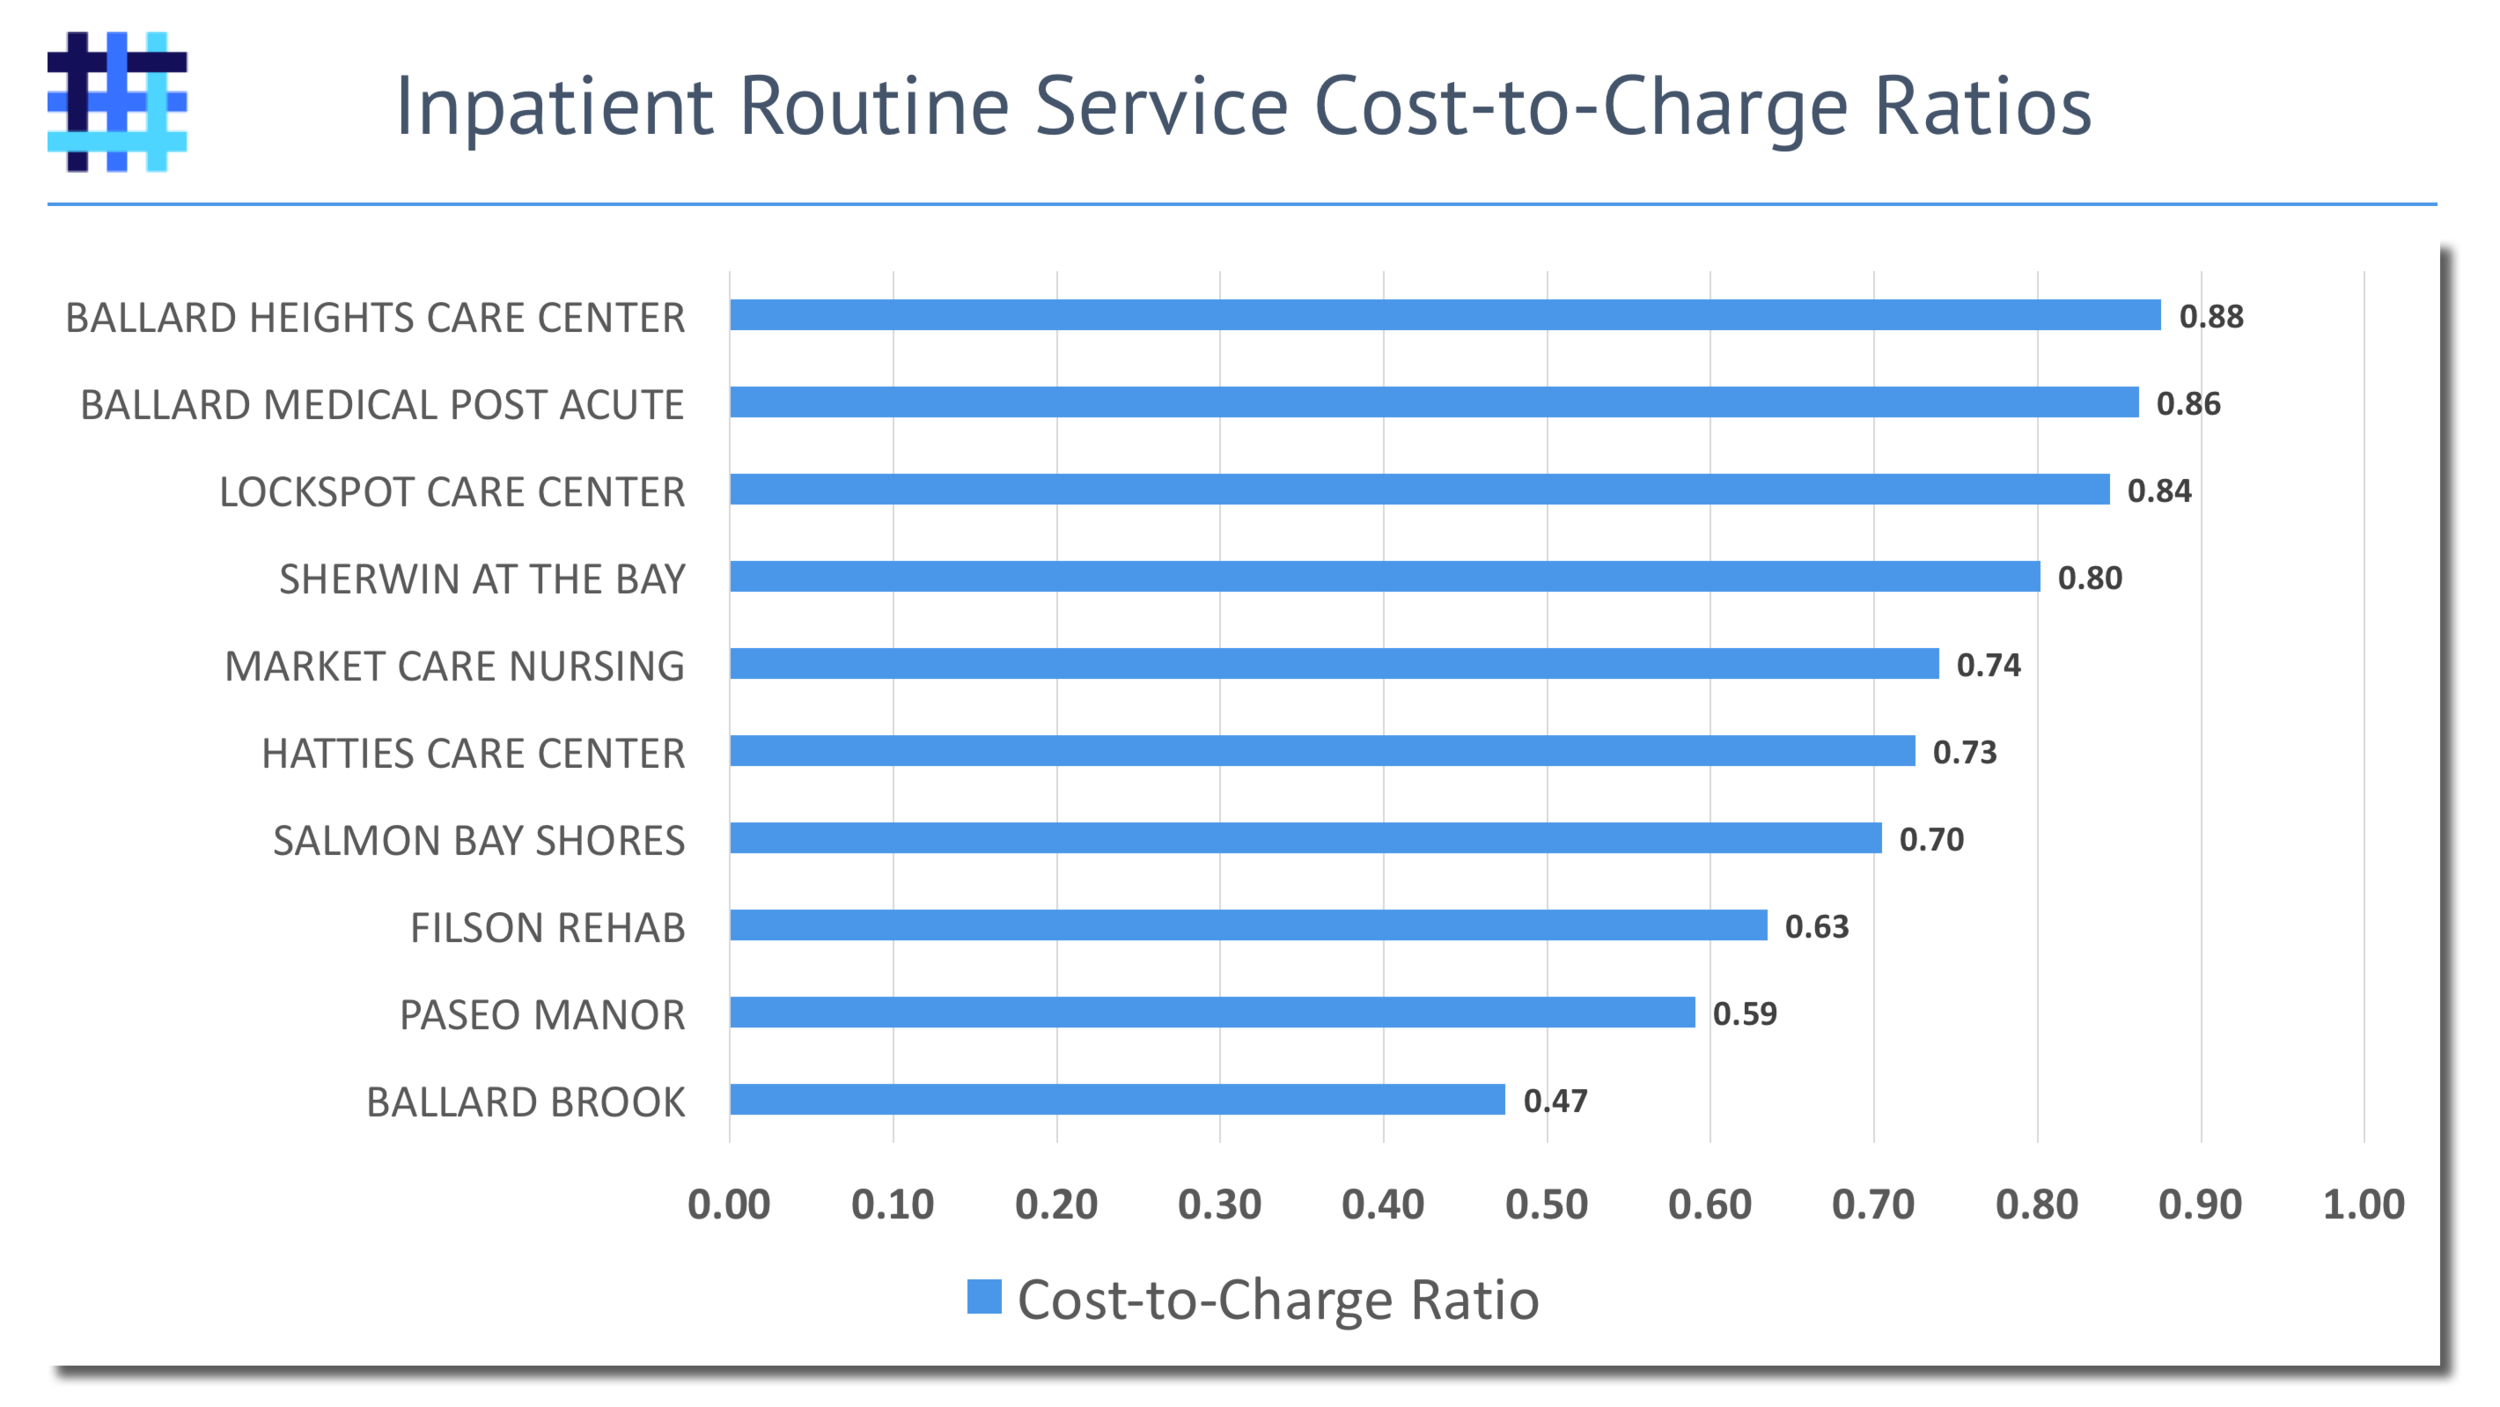 Nursing Home and Skilled Nursing Facility Inpatient Service Cost-to-Charge Ratios for Medicare Beneficiaries (MSPB)